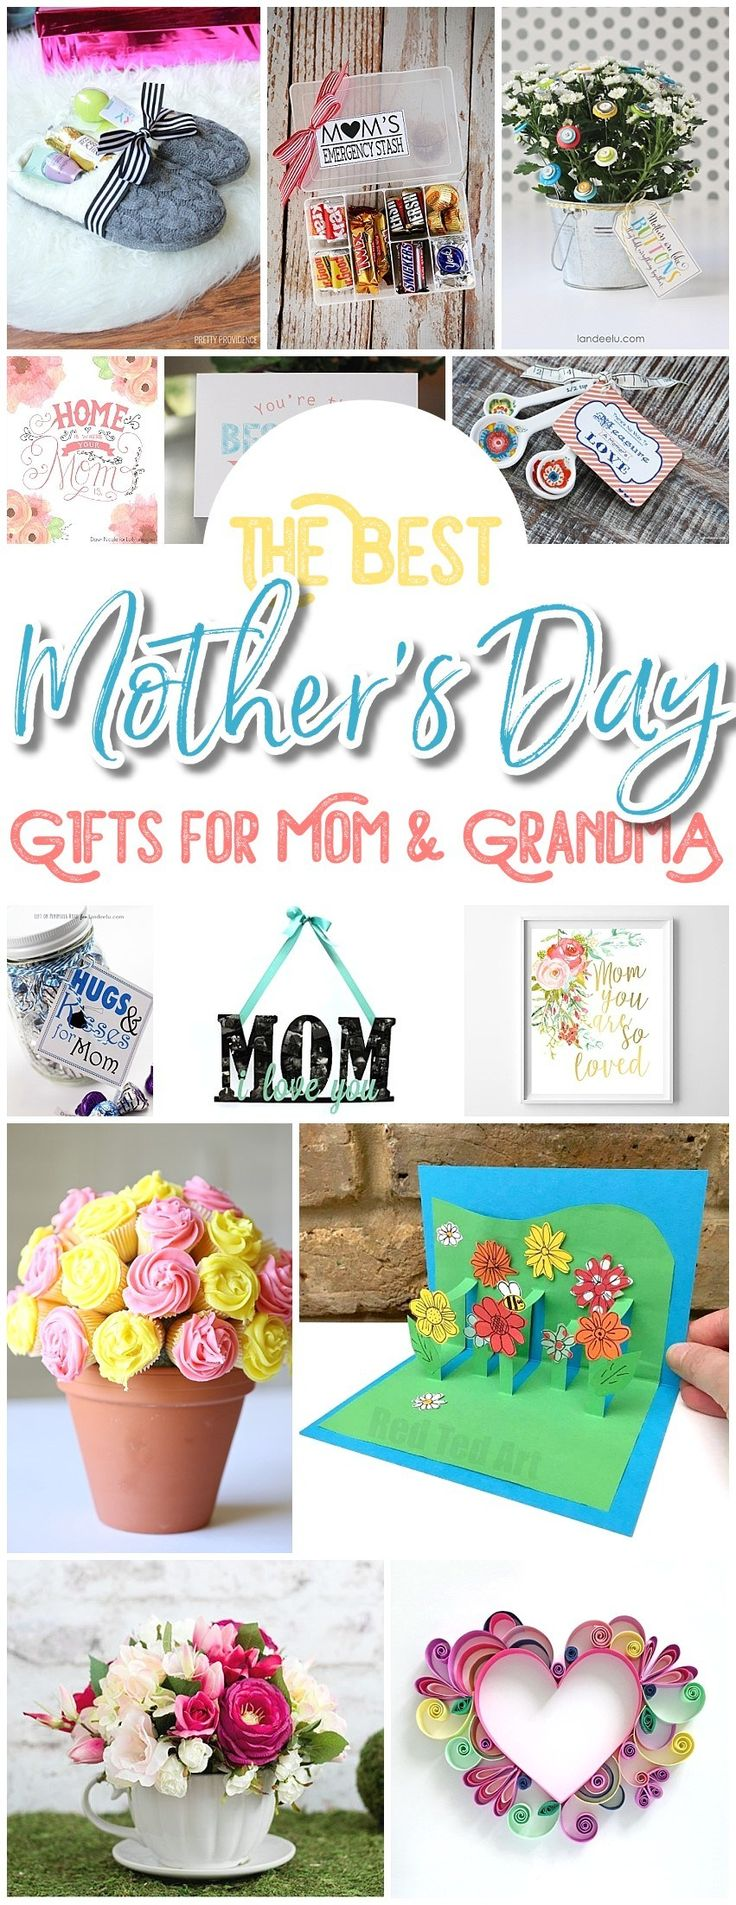 The BEST Easy DIY Mother's Day Gifts and Treats Ideas – Holiday Craft Activity Projects, Free Printables, Kids Paper Crafts and Favorite Brunch Desserts Recipes for Moms and Grandmas - Dreaming in DIY